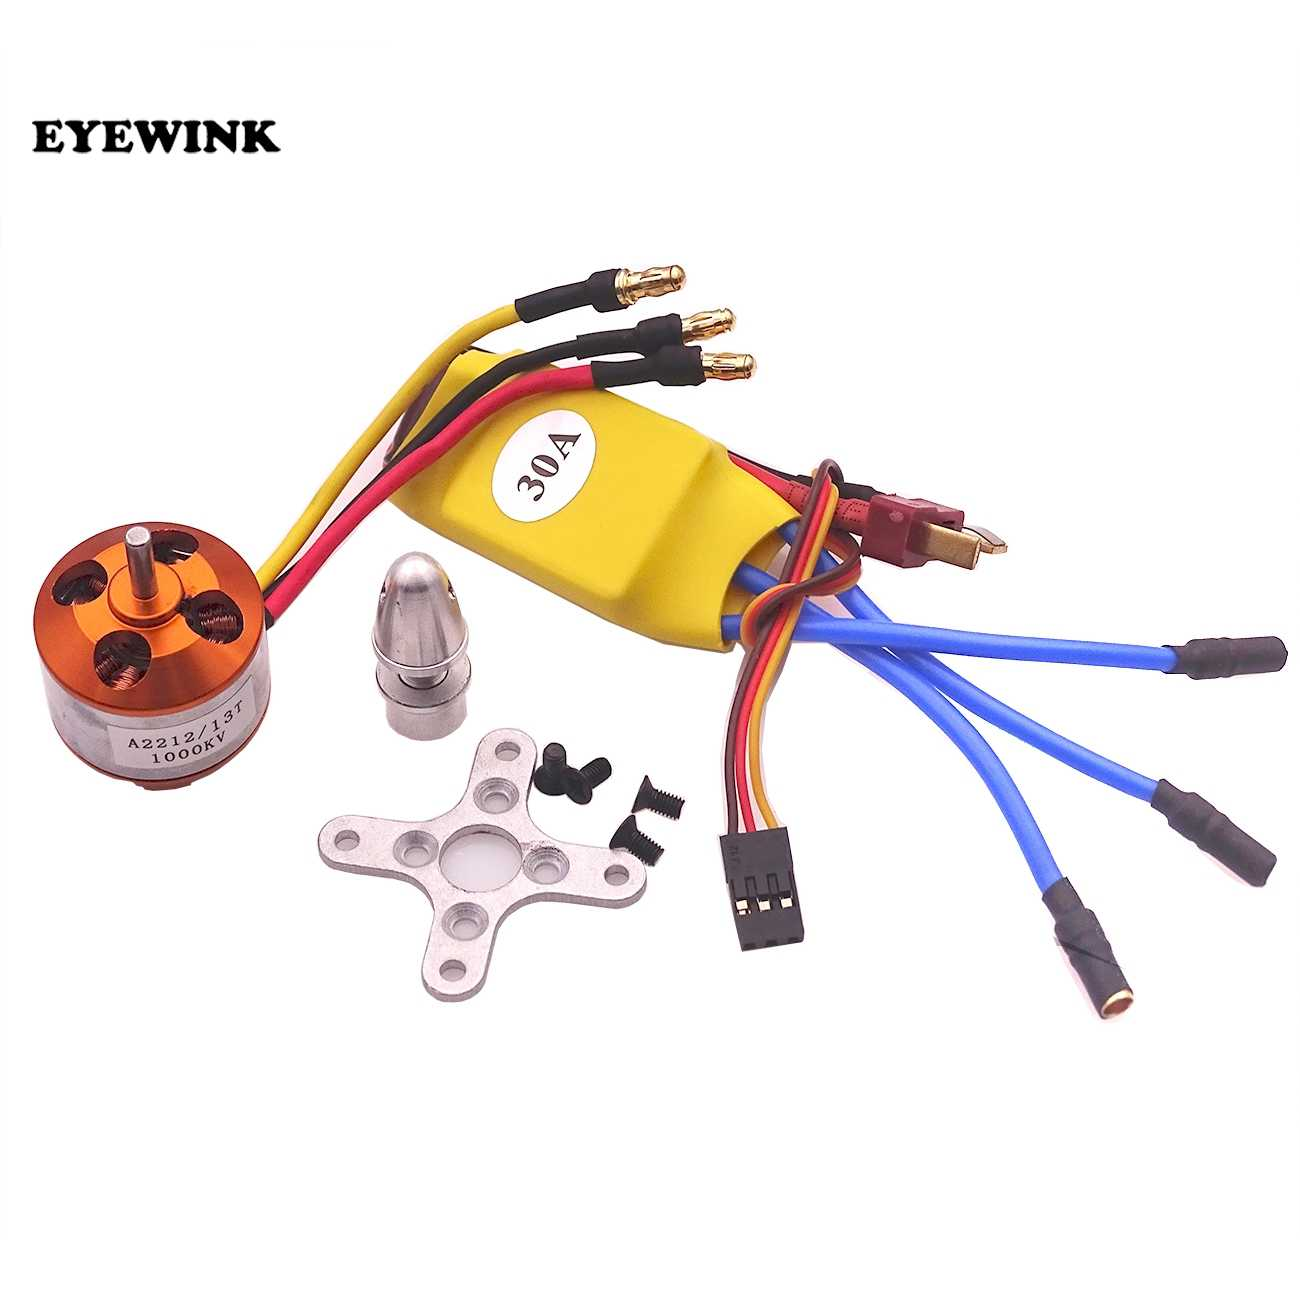 13 T A2212 1000KV Brushless Motor 30A ESC Combo untuk Quadcopter F450 Quadcopter F550 RC Hexacopter 4-Axis Helikopter